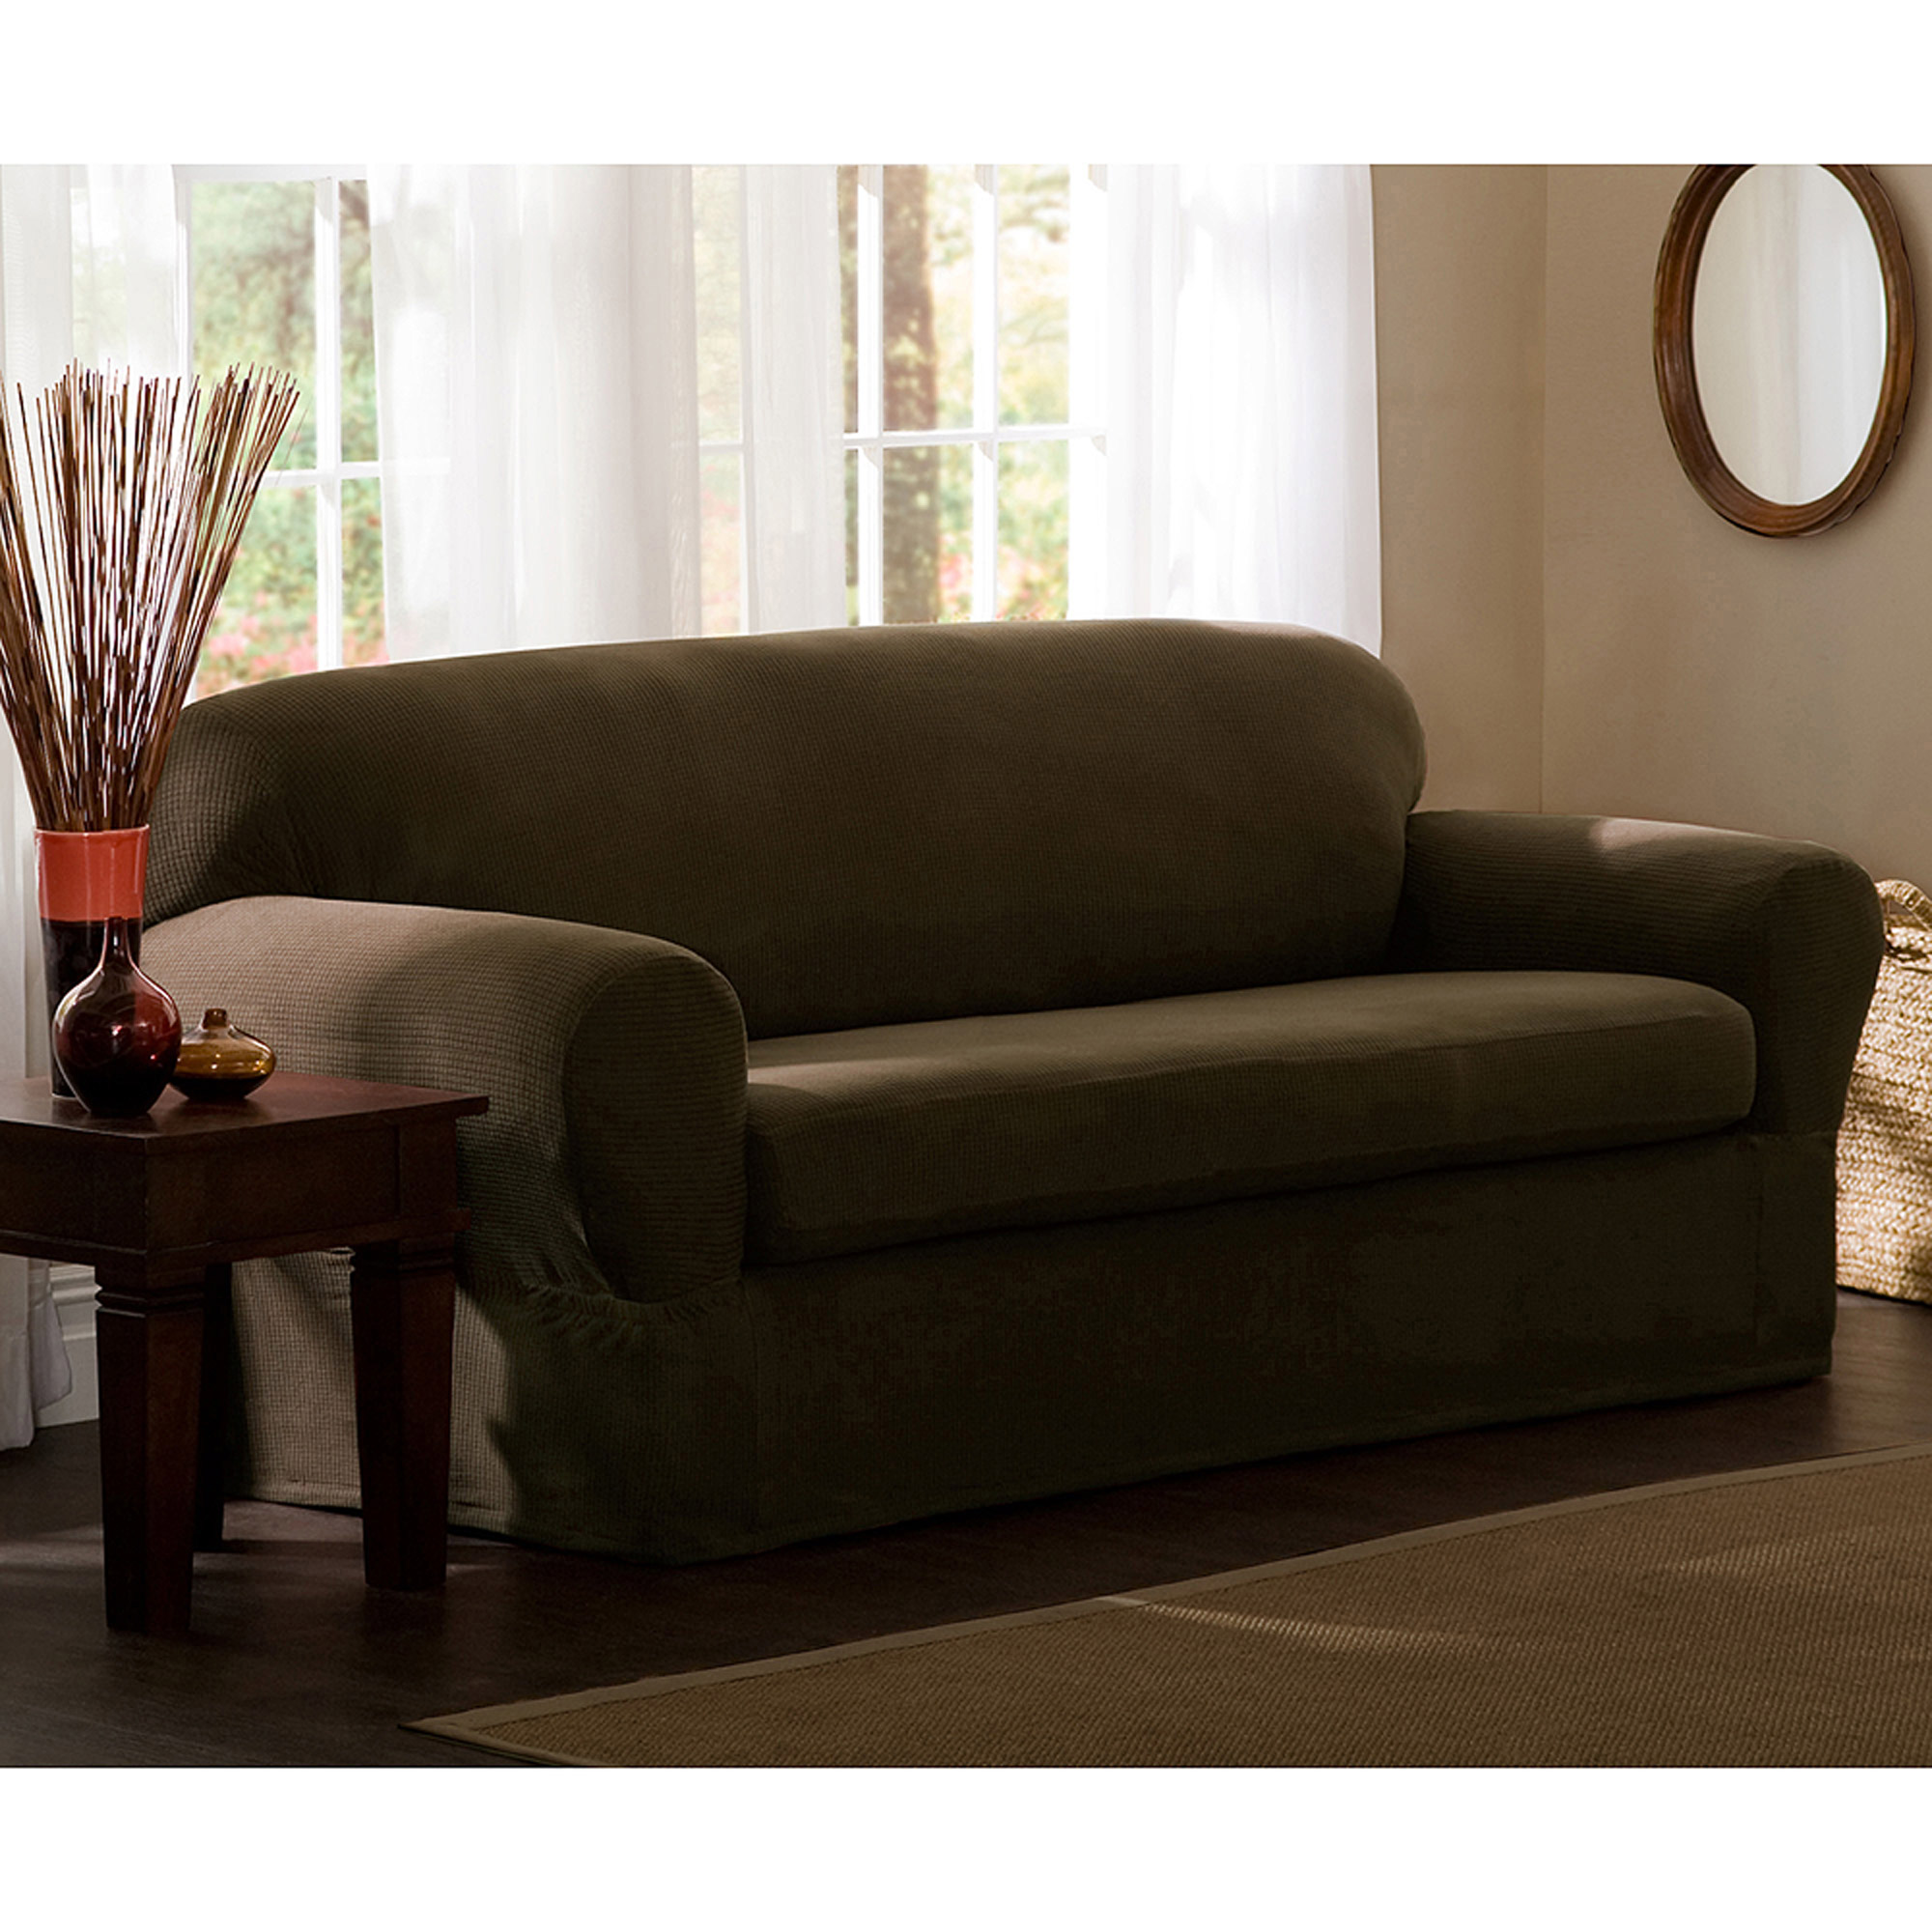 Maytex Stretch Reeves 2 Piece Loveseat Furniture Cover Slipcover -  Traveller Location